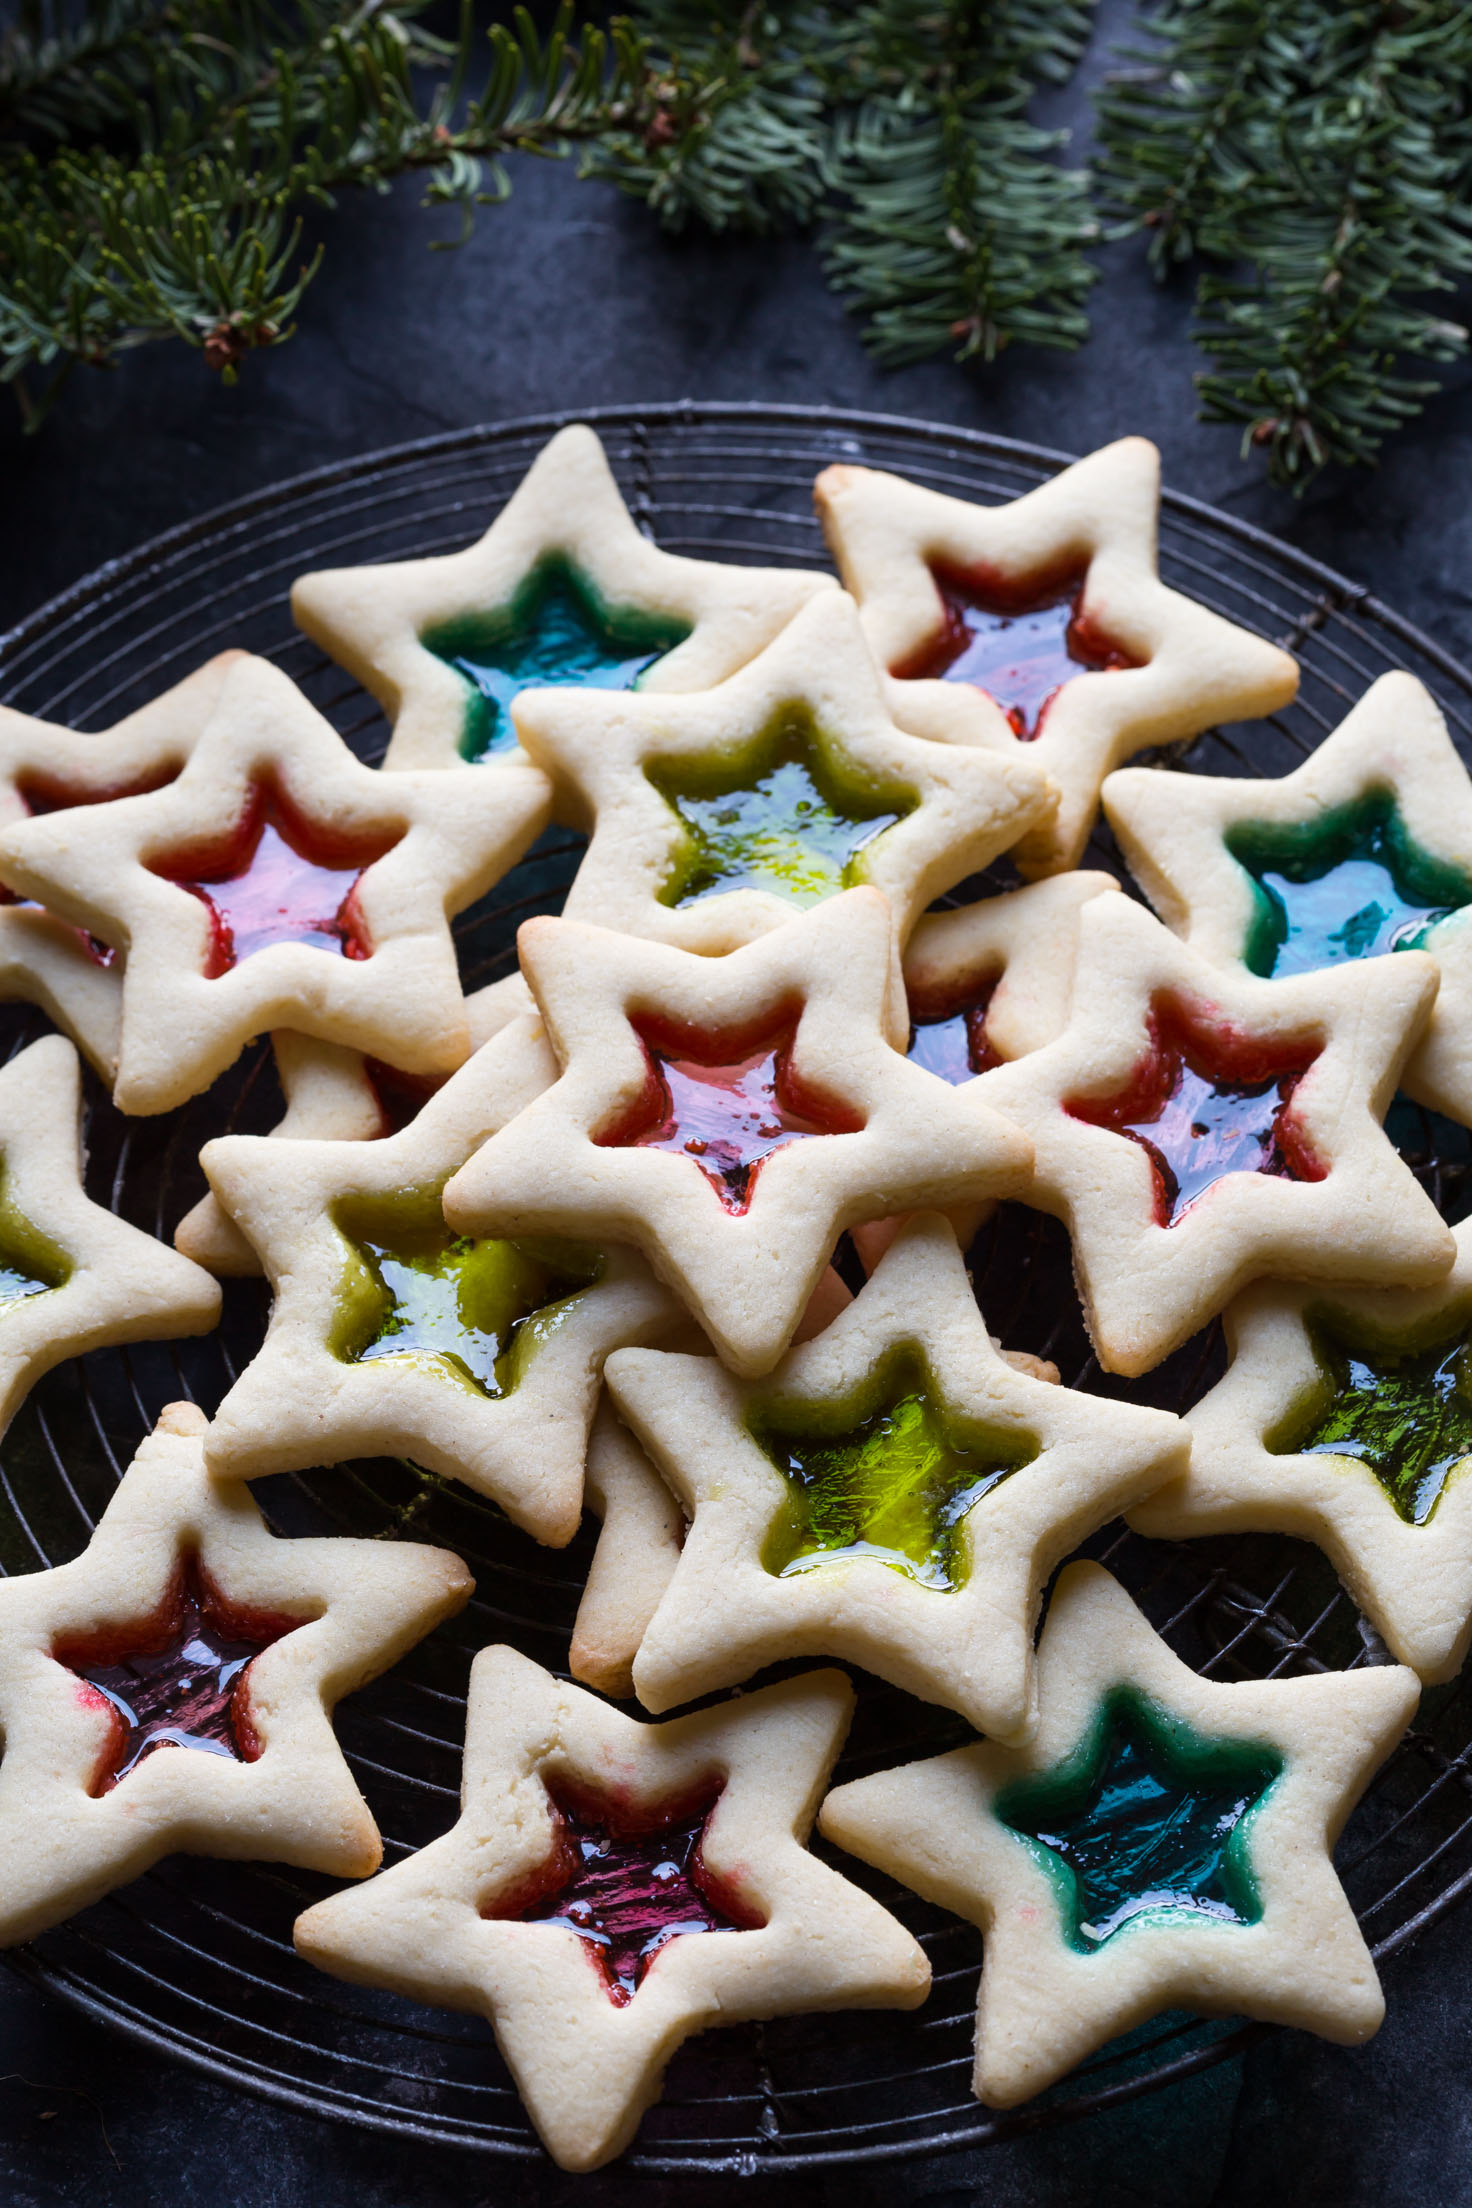 10 Cute Creative Christmas Cookies - Gluten Free Stained Glass Cookies | https://www.roseclearfield.com